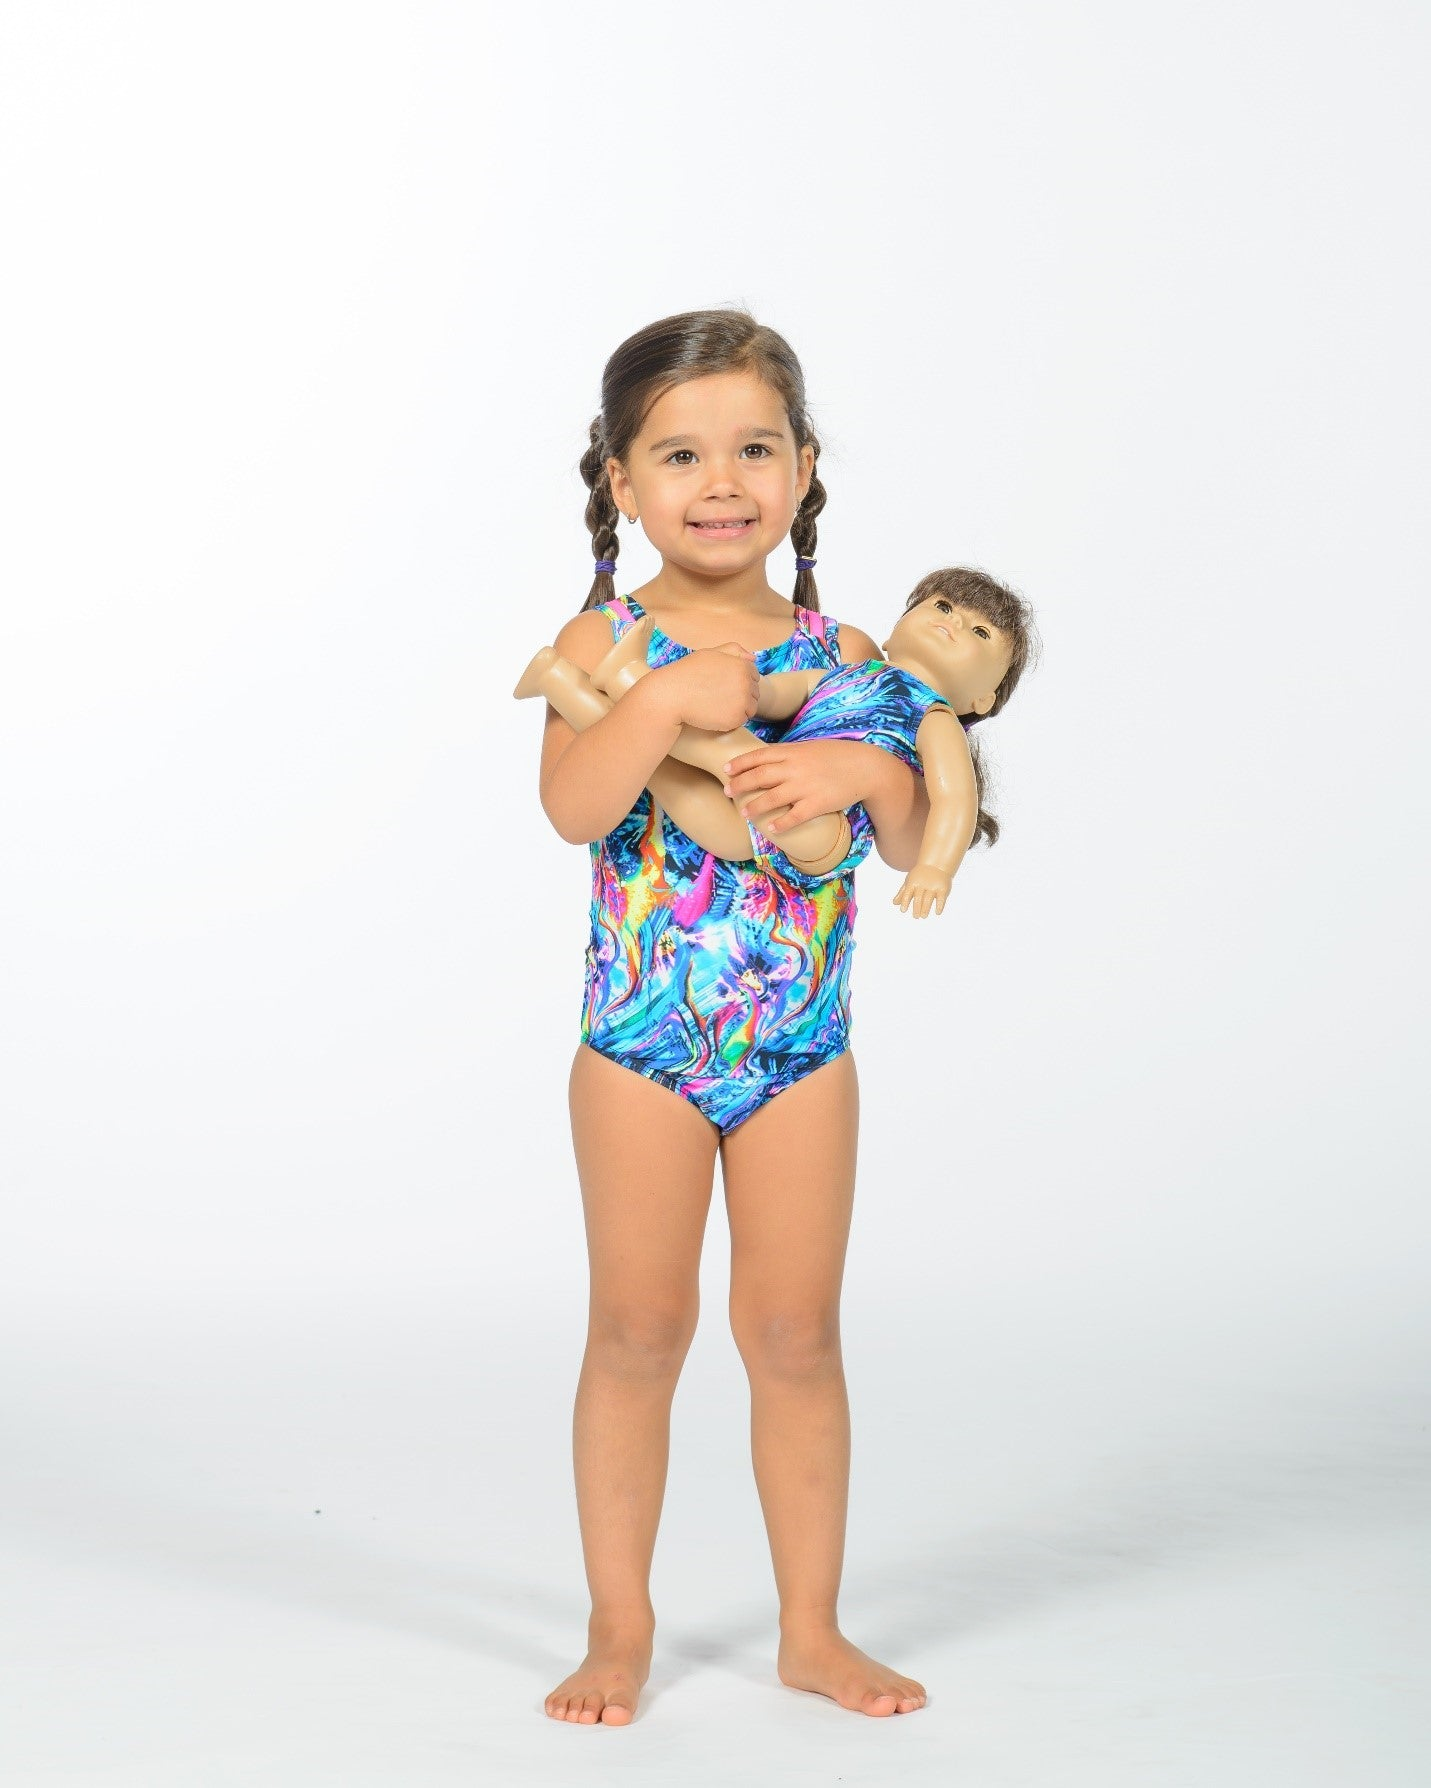 1613b3f21 Where to Buy Gymnastics Leotards for Toddlers - Destira